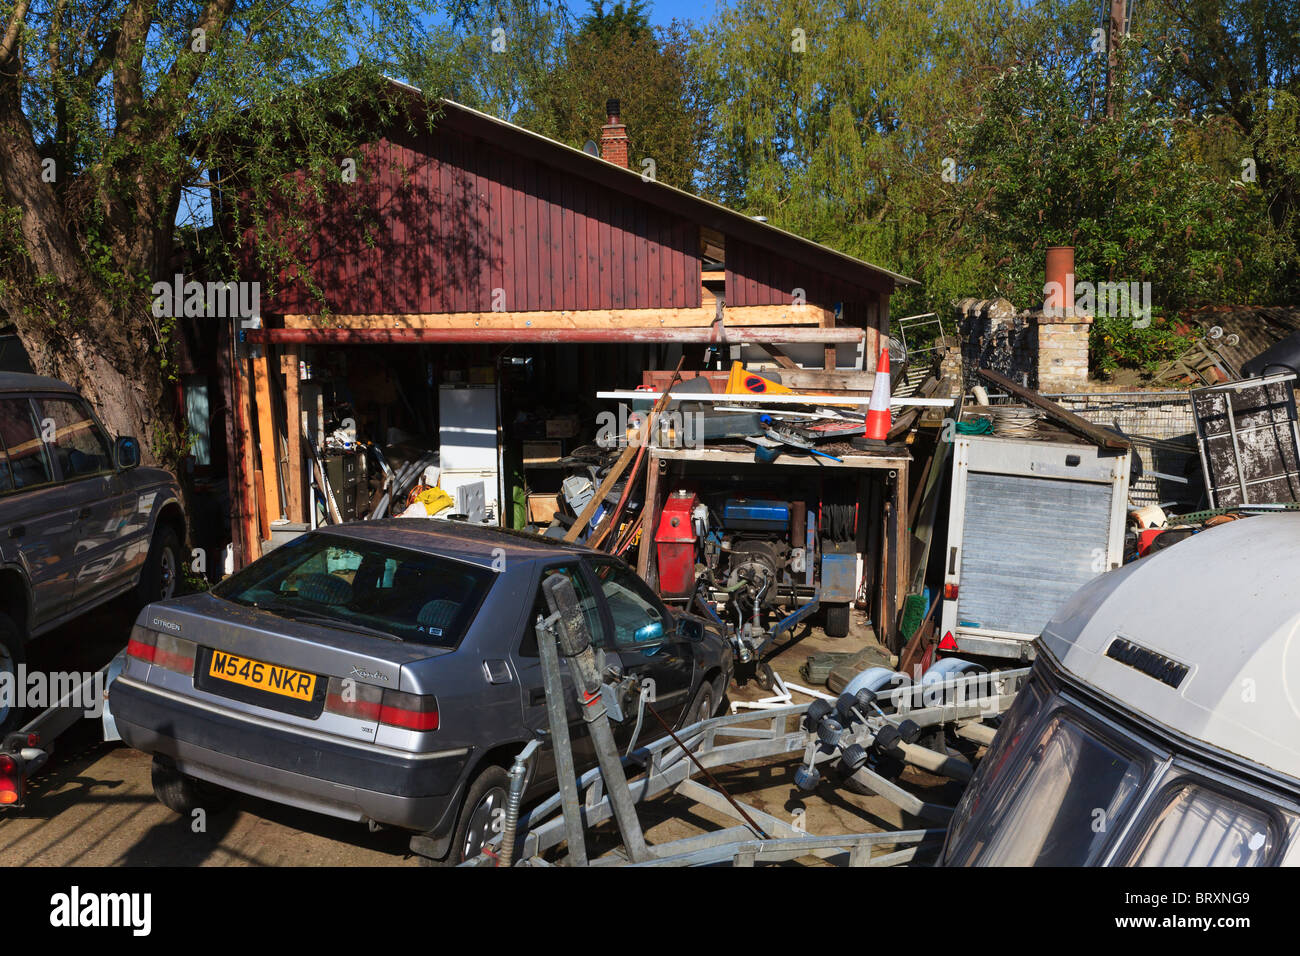 Builders Junk yard, containing cars, Caravan Shed Trailers, on the ...